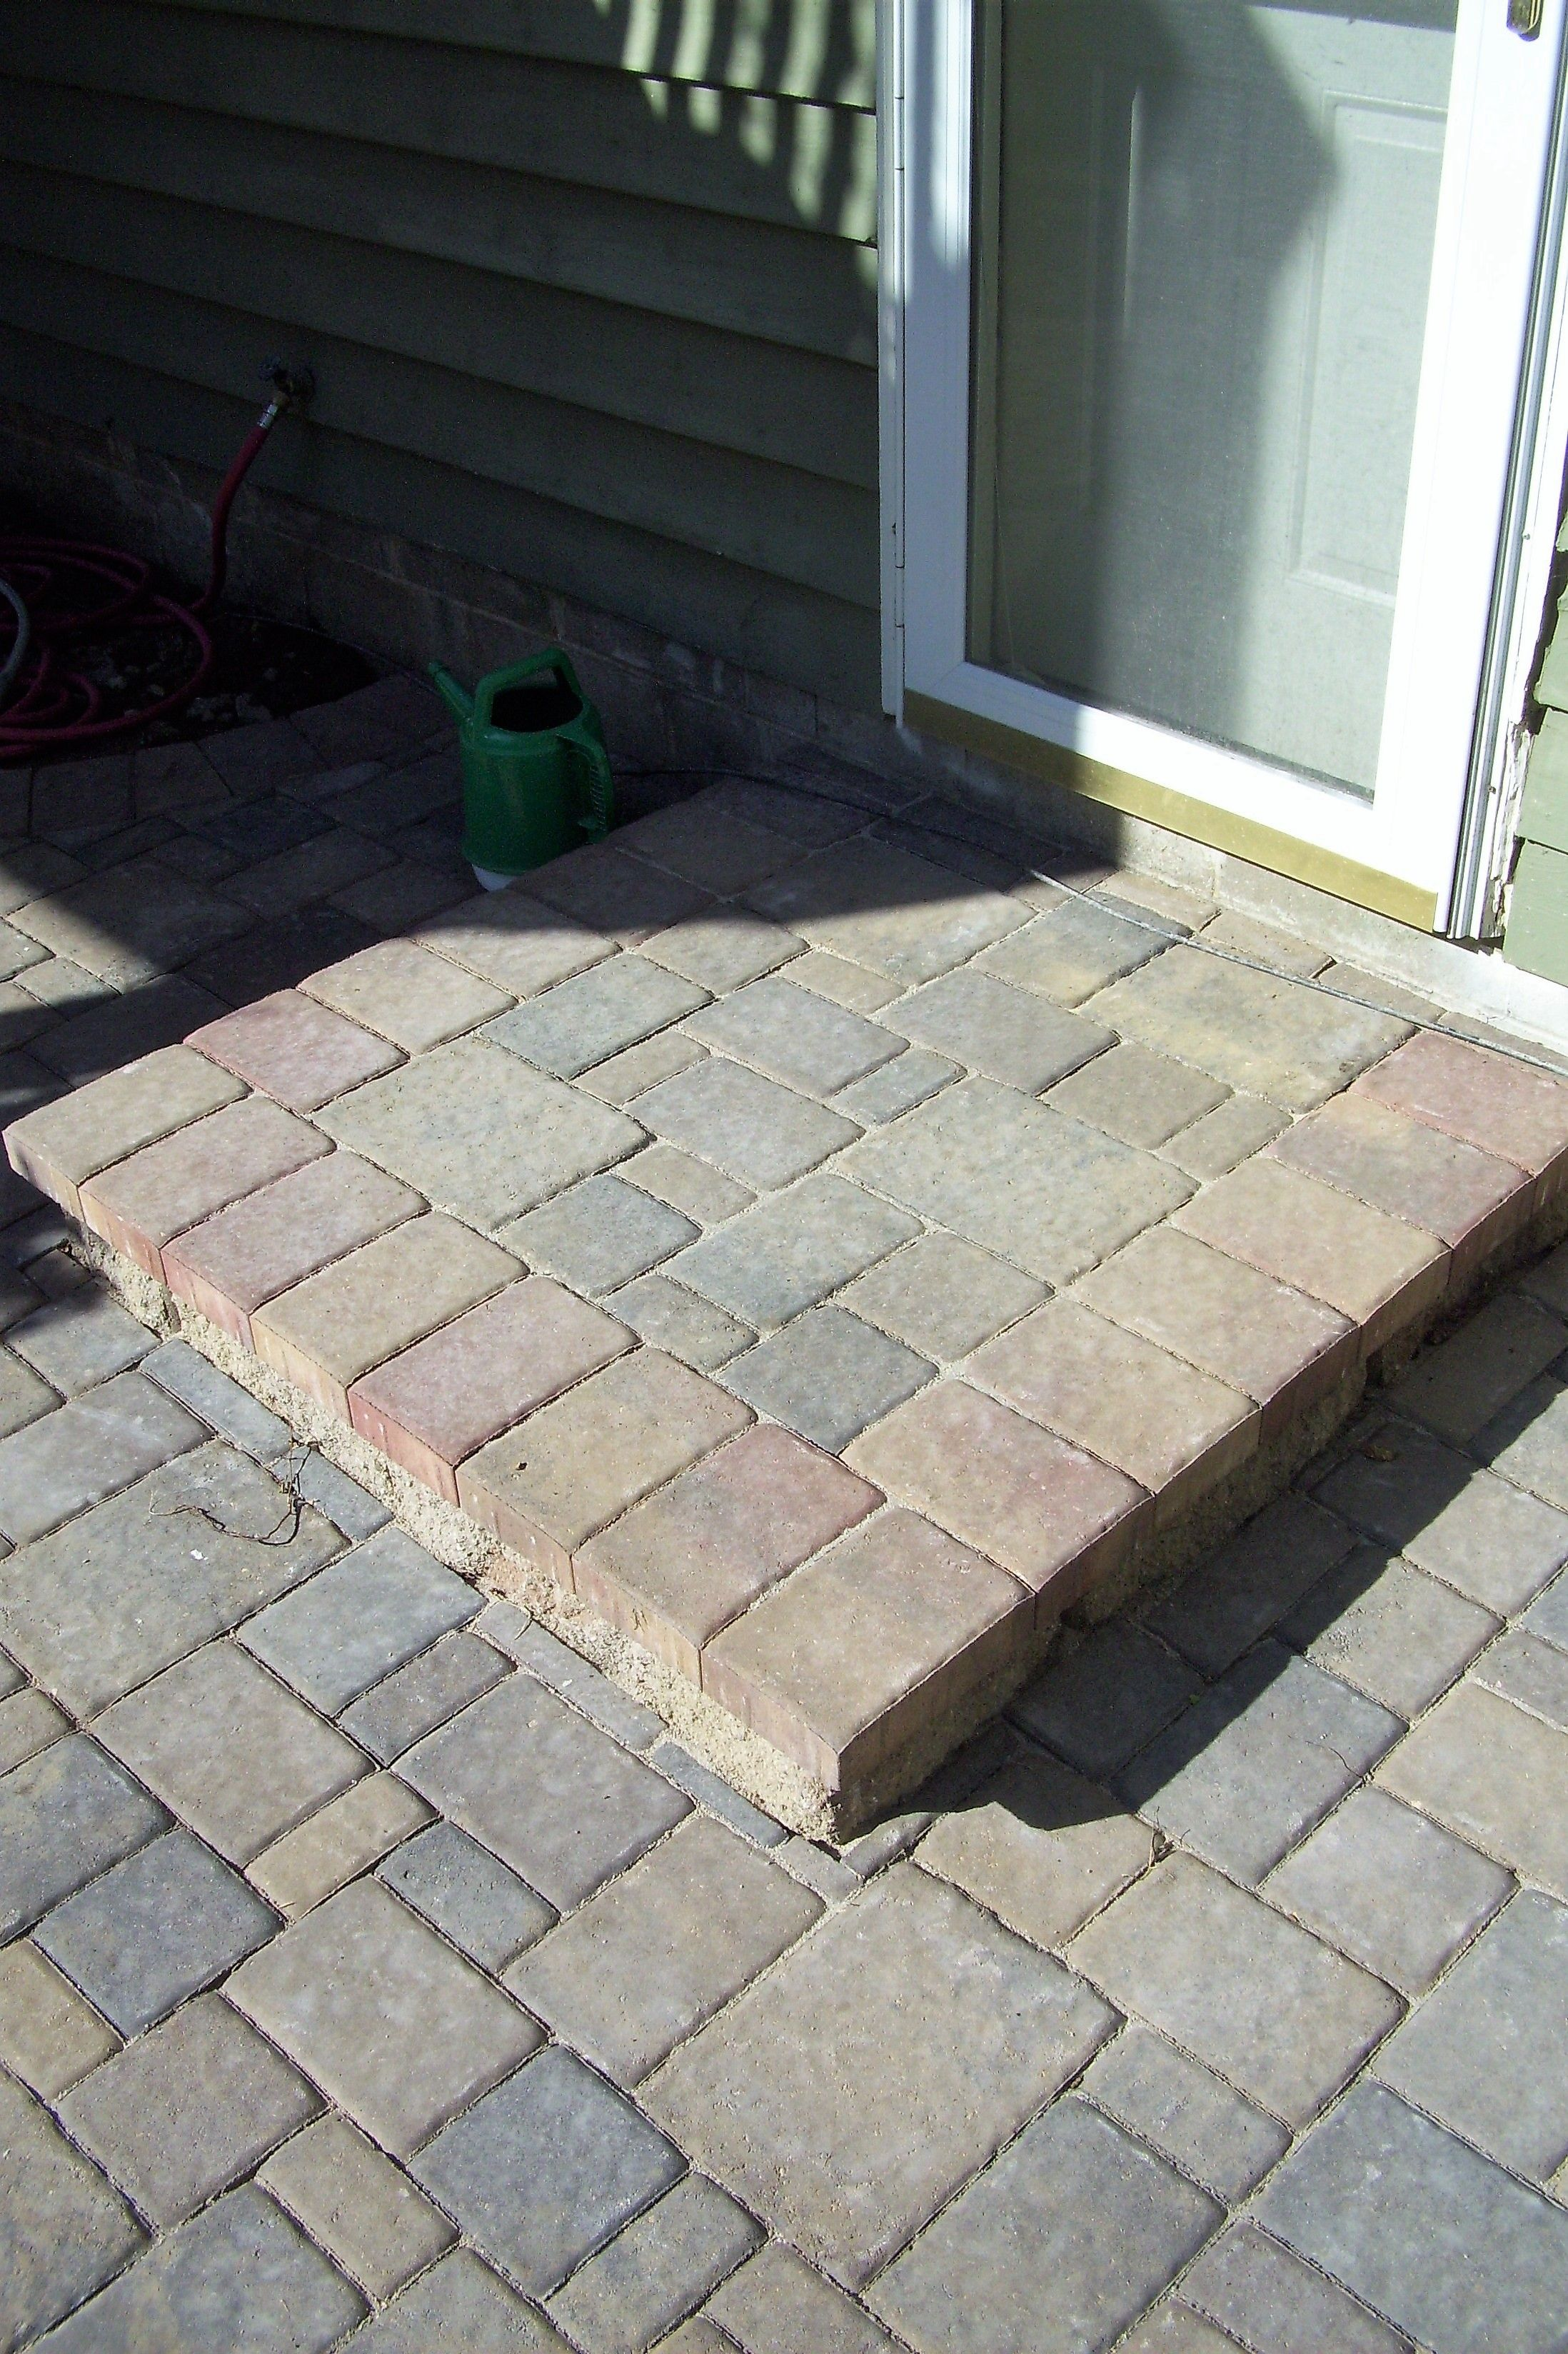 patios services central company patio installation paving nottingham